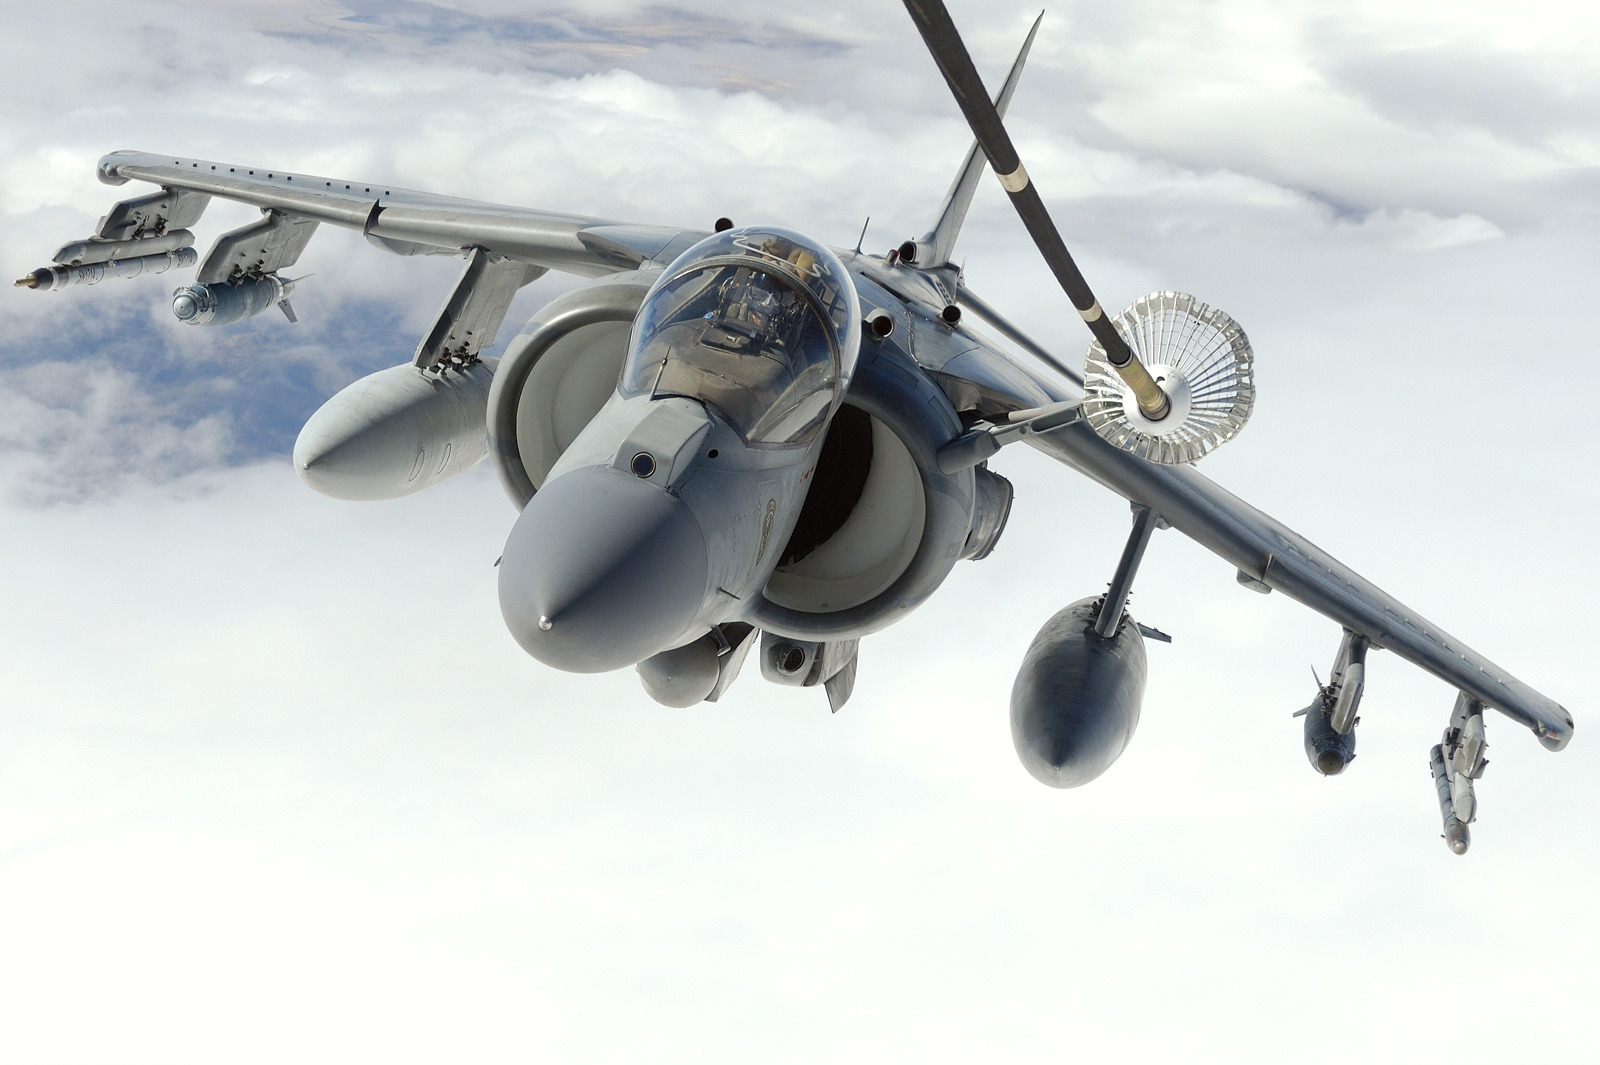 Aircraft military Boeing harrier HD Wallpaper